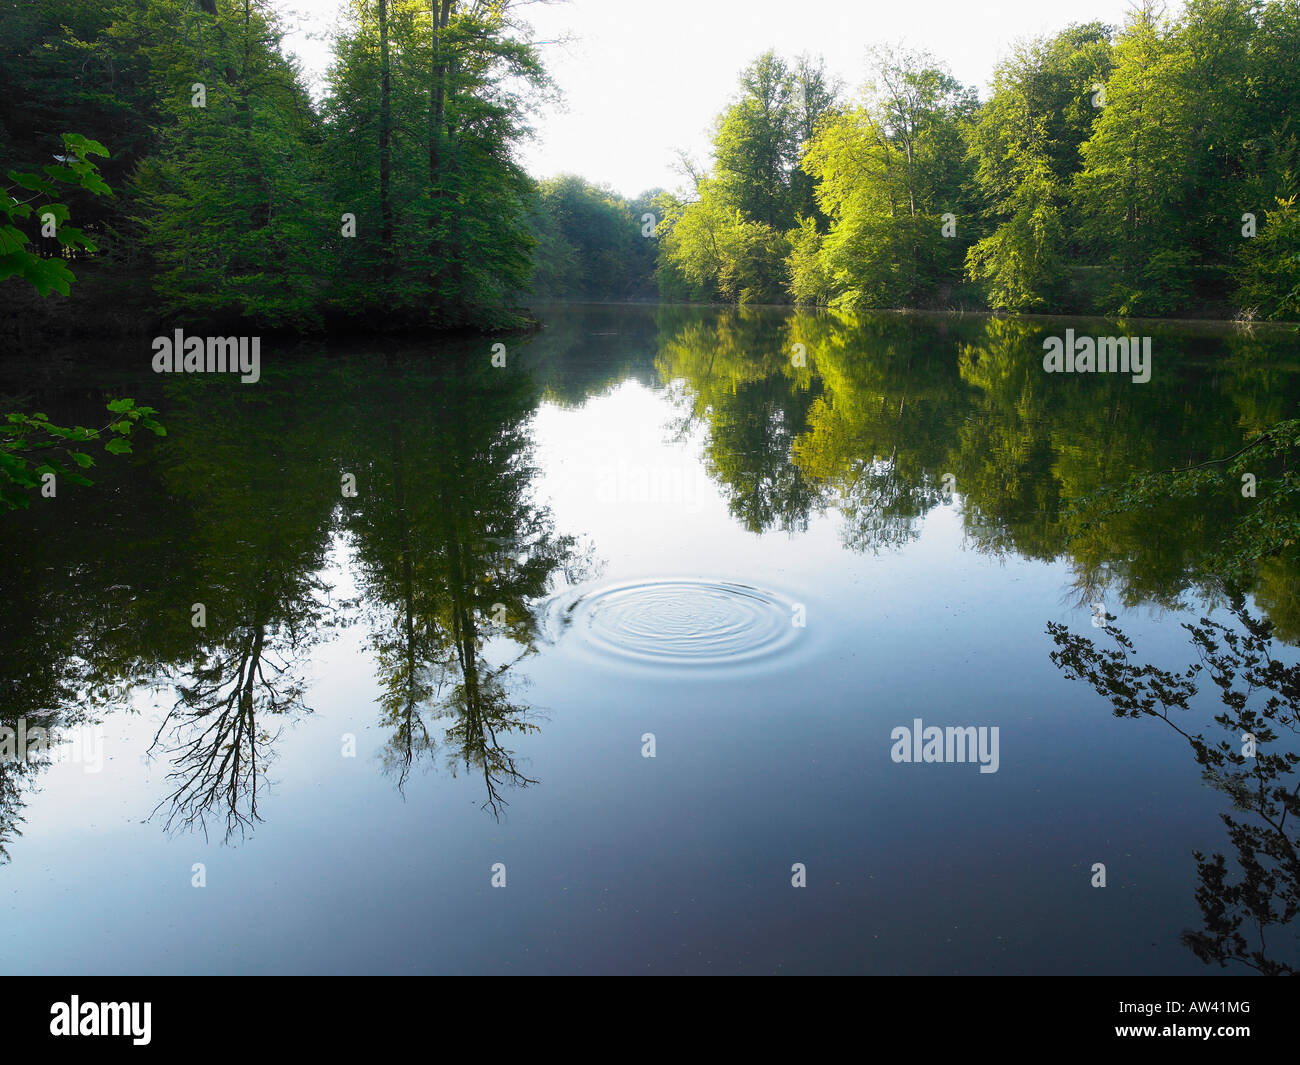 Riddle on a lake. - Stock Image